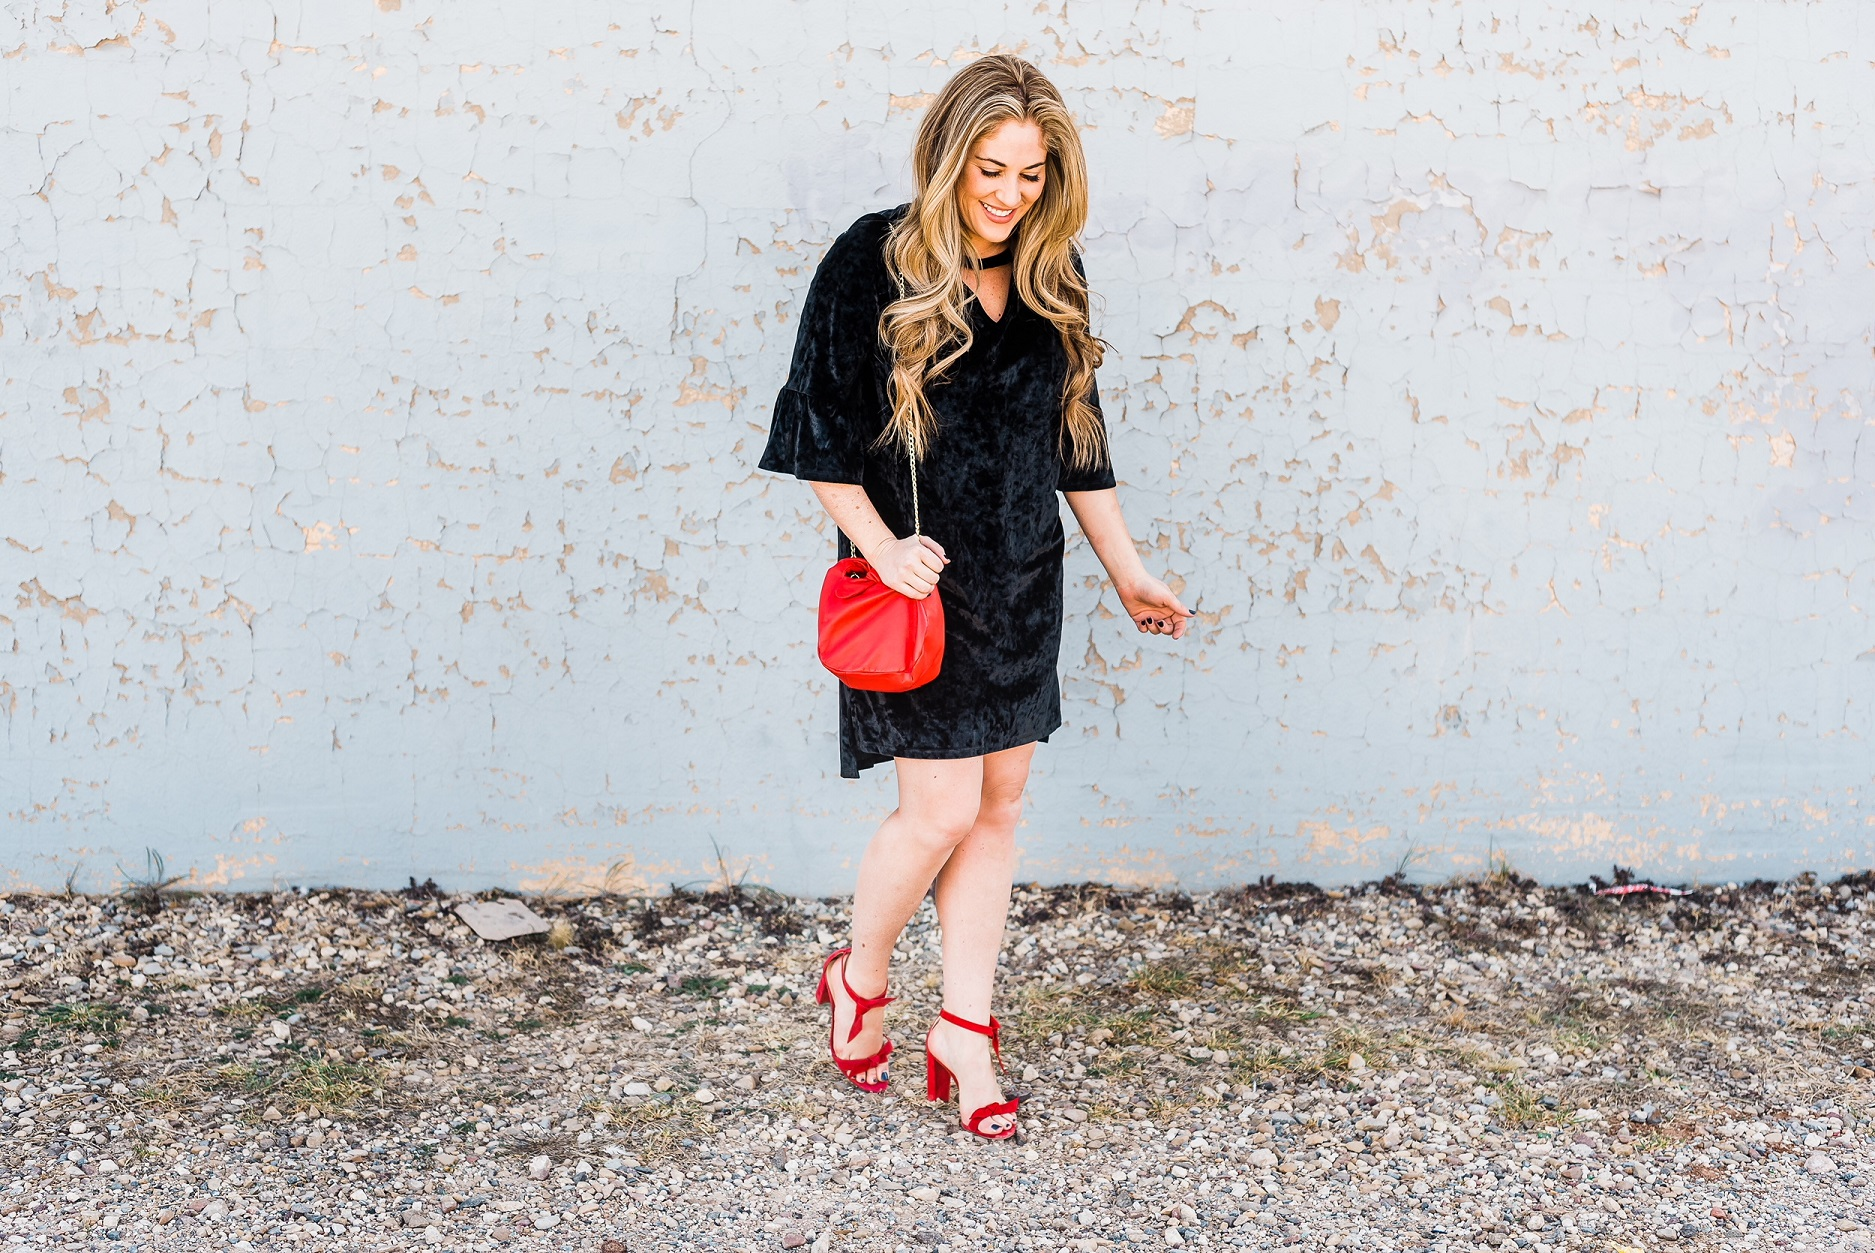 How to Add Red Accessories for the Perfect Valentine's Day Look by East Memphis fashion blogger Walking in Memphis in High Heels